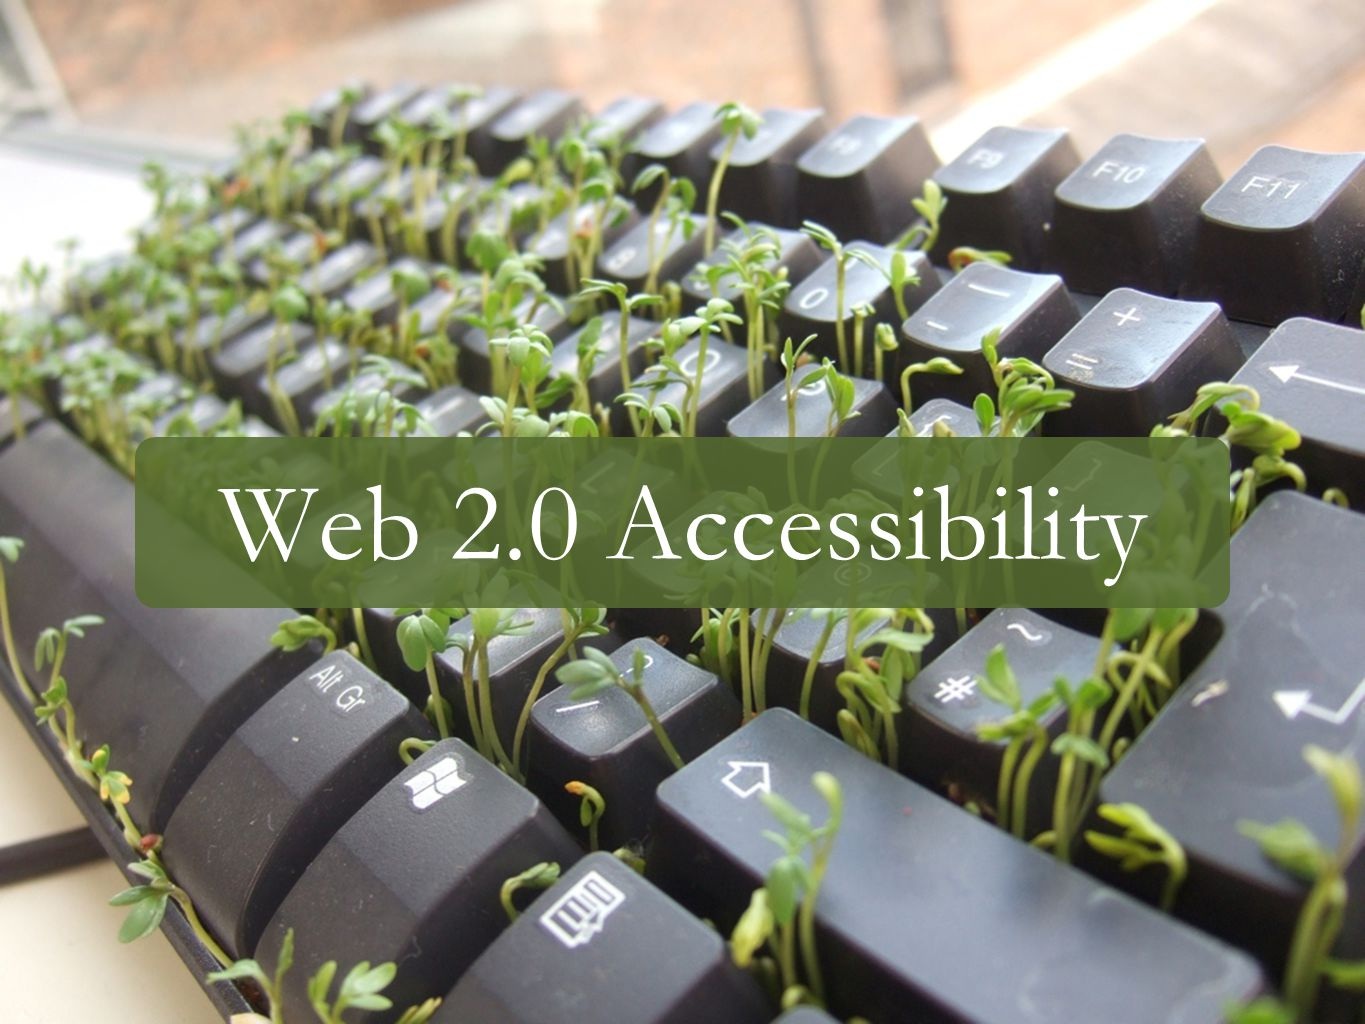 Web 2.0 Accessibility